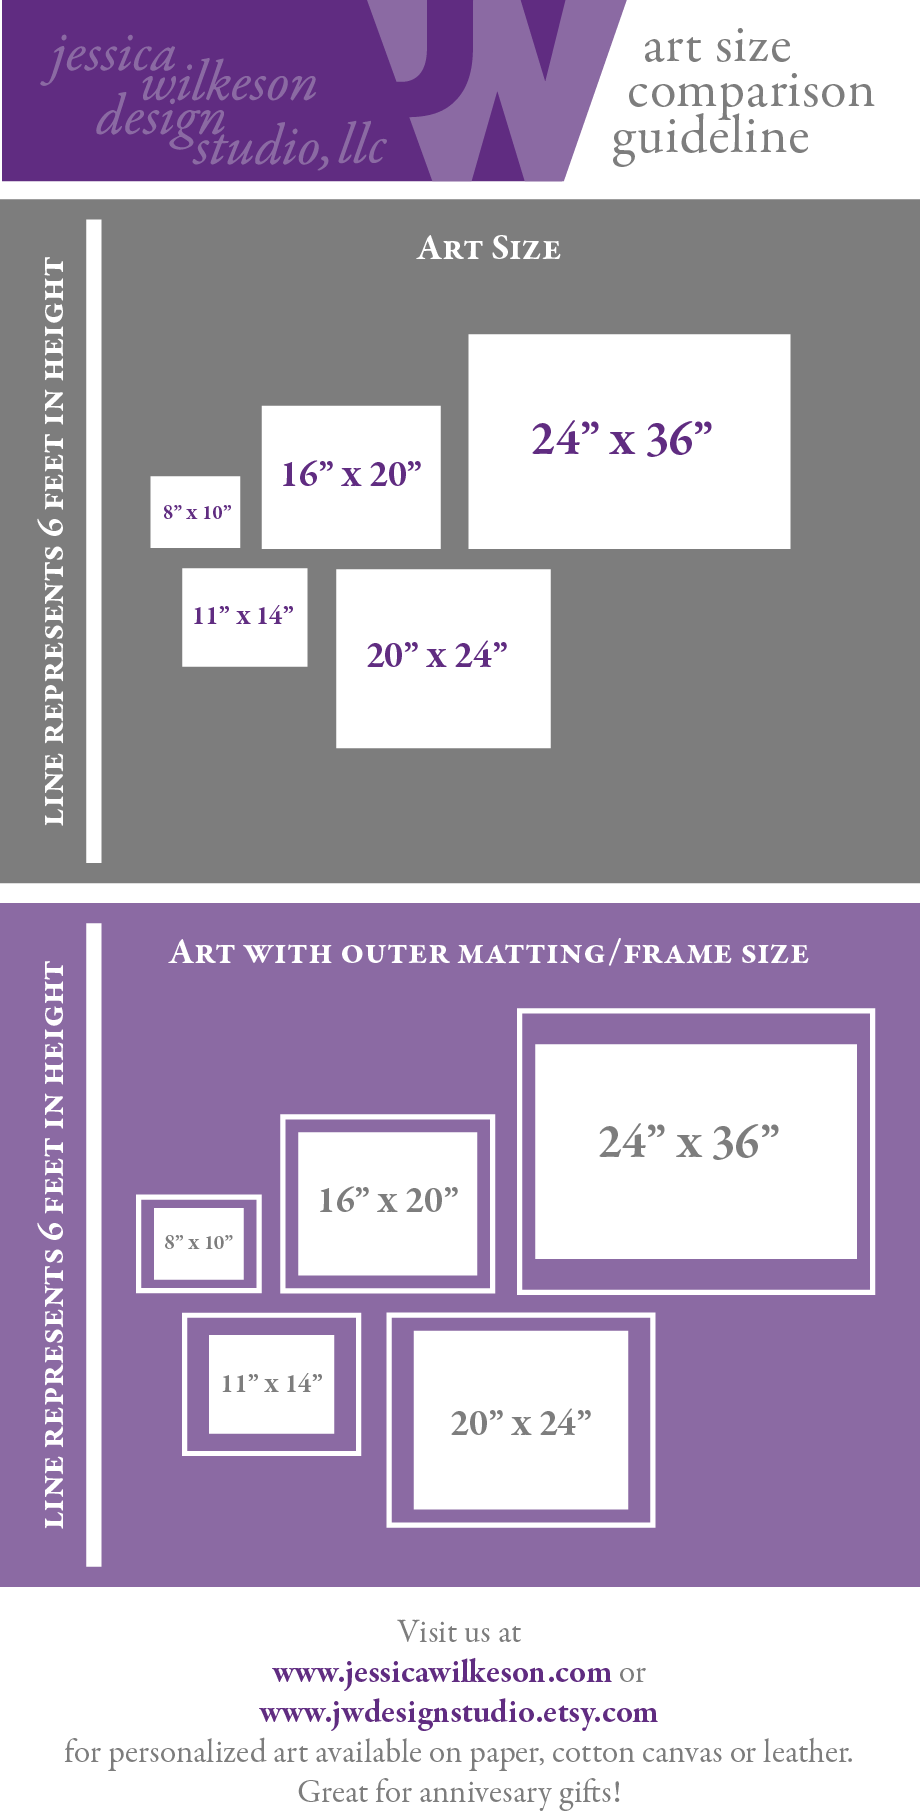 art-size-comparison-guide-frame-size-options